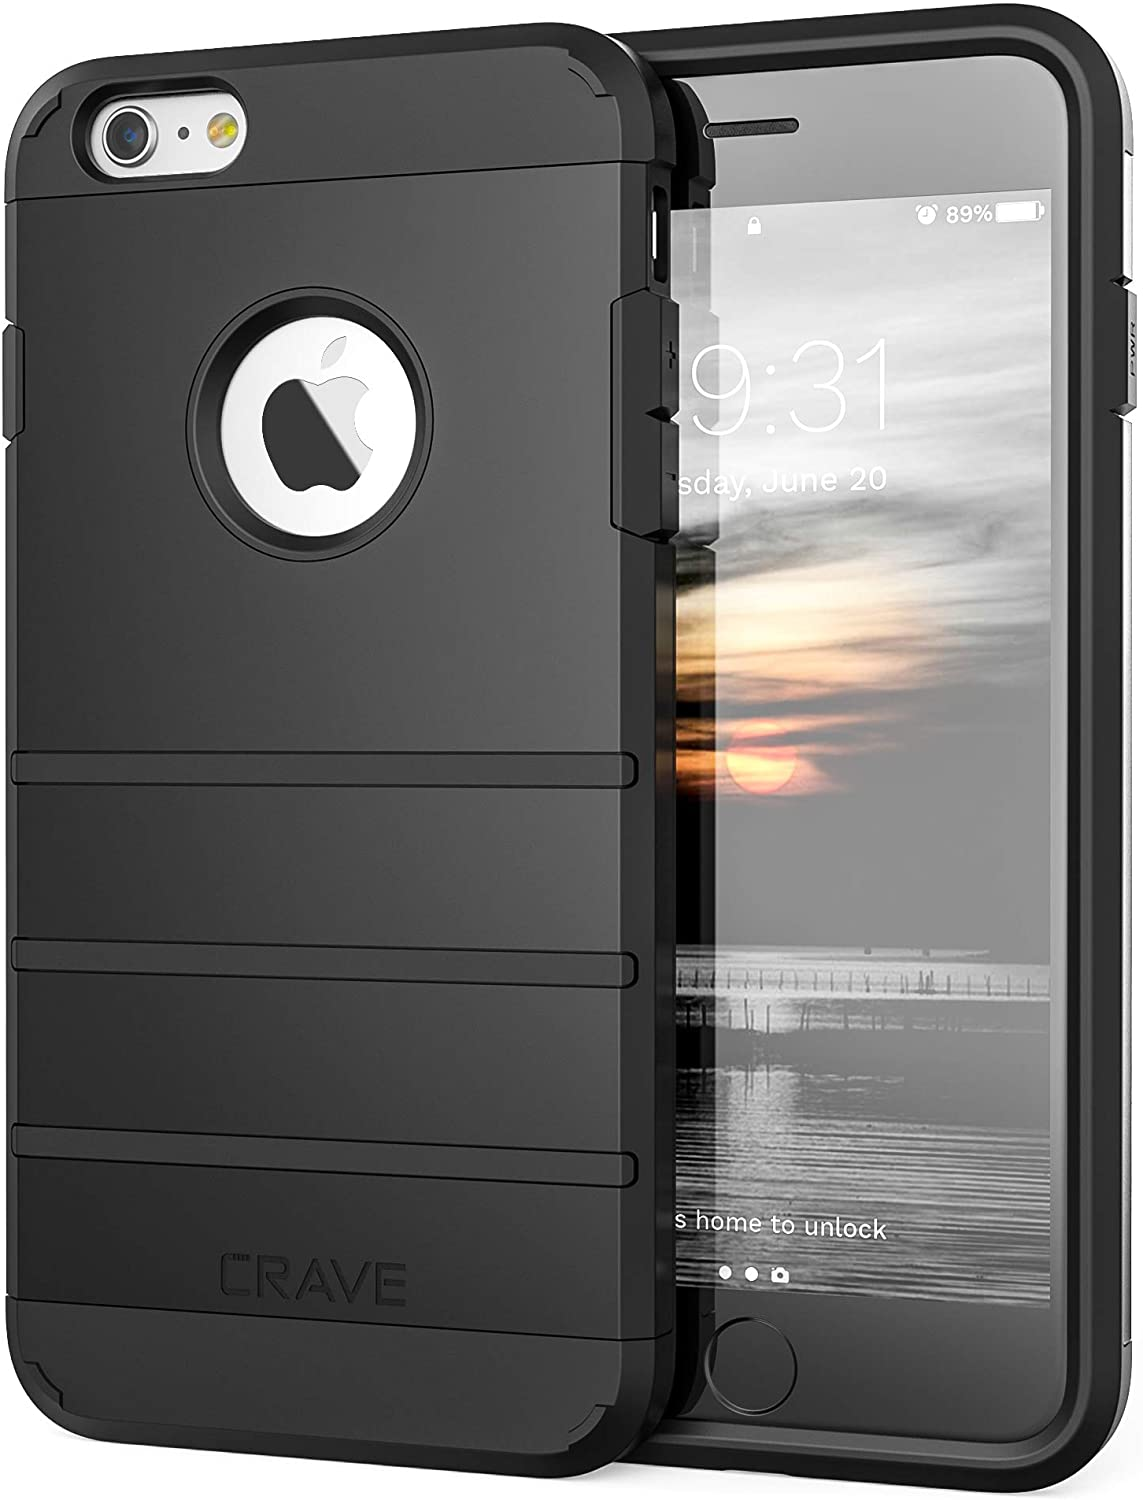 Crave iPhone 6S Plus Case, iPhone 6 Plus Case, Strong Guard Protection Series Case for iPhone 6 / 6s Plus (5.5 Inch) - Black